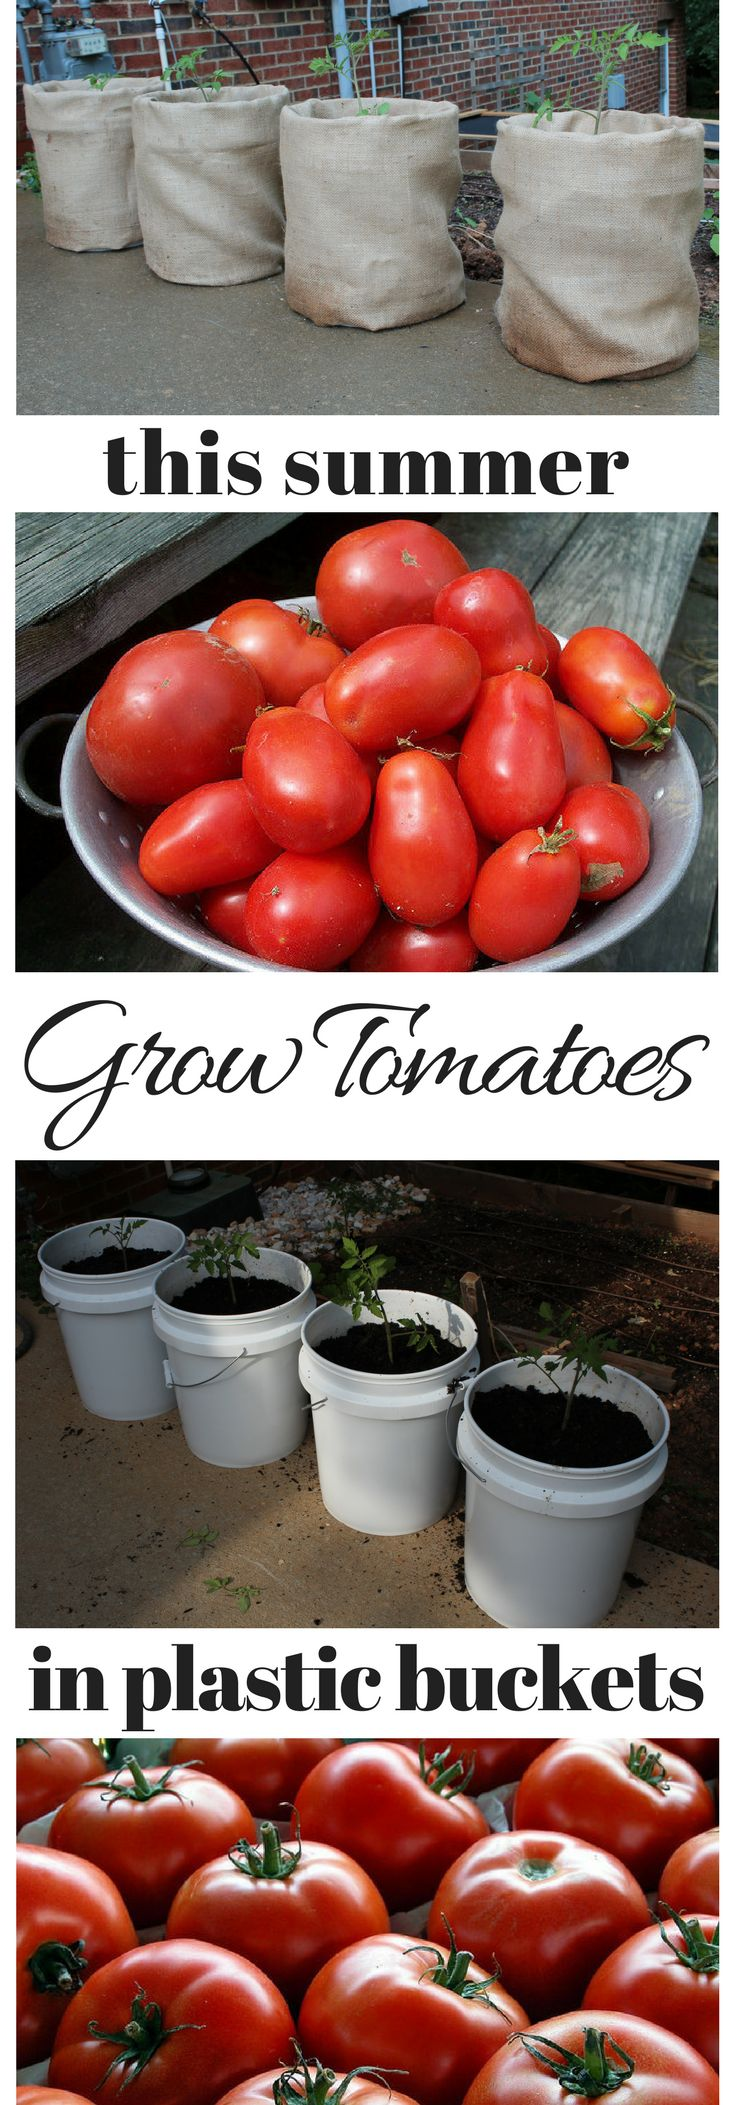 Grow tomatoes in plastic buckets ve able garden growing tomatoes container gardening